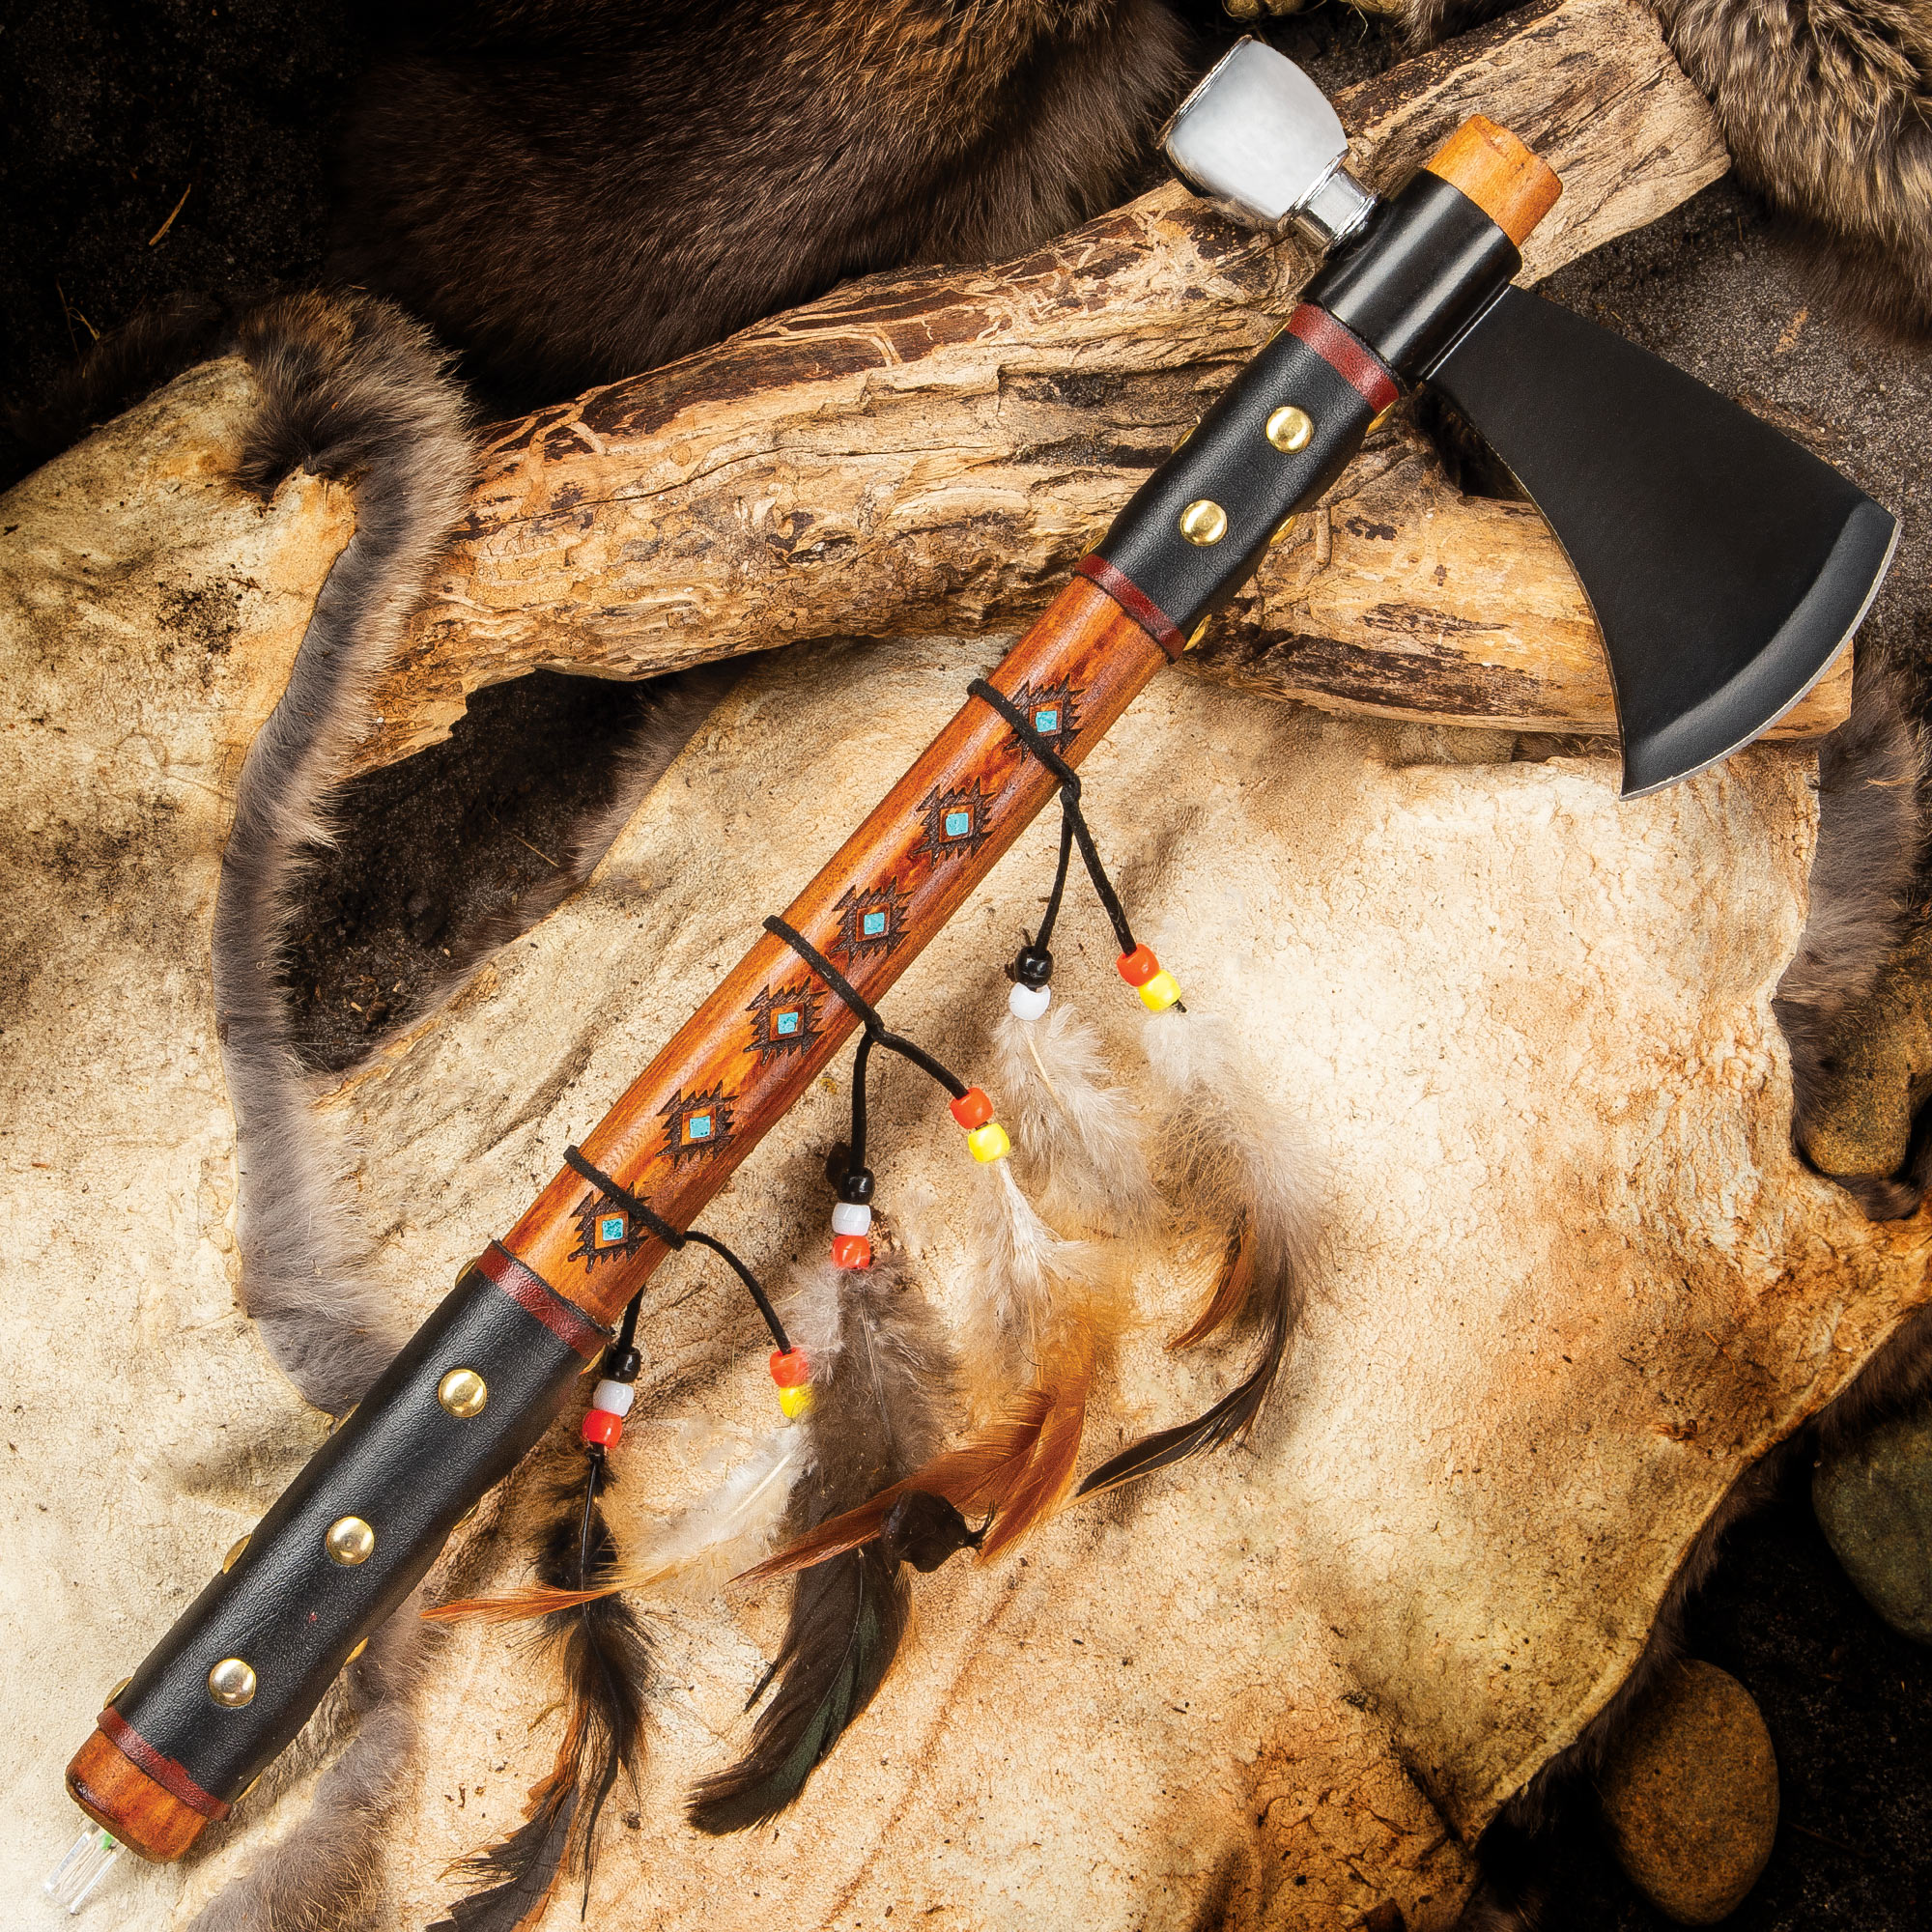 Southwestern Tomahawk Peace Pipe - Stainless Steel Head With